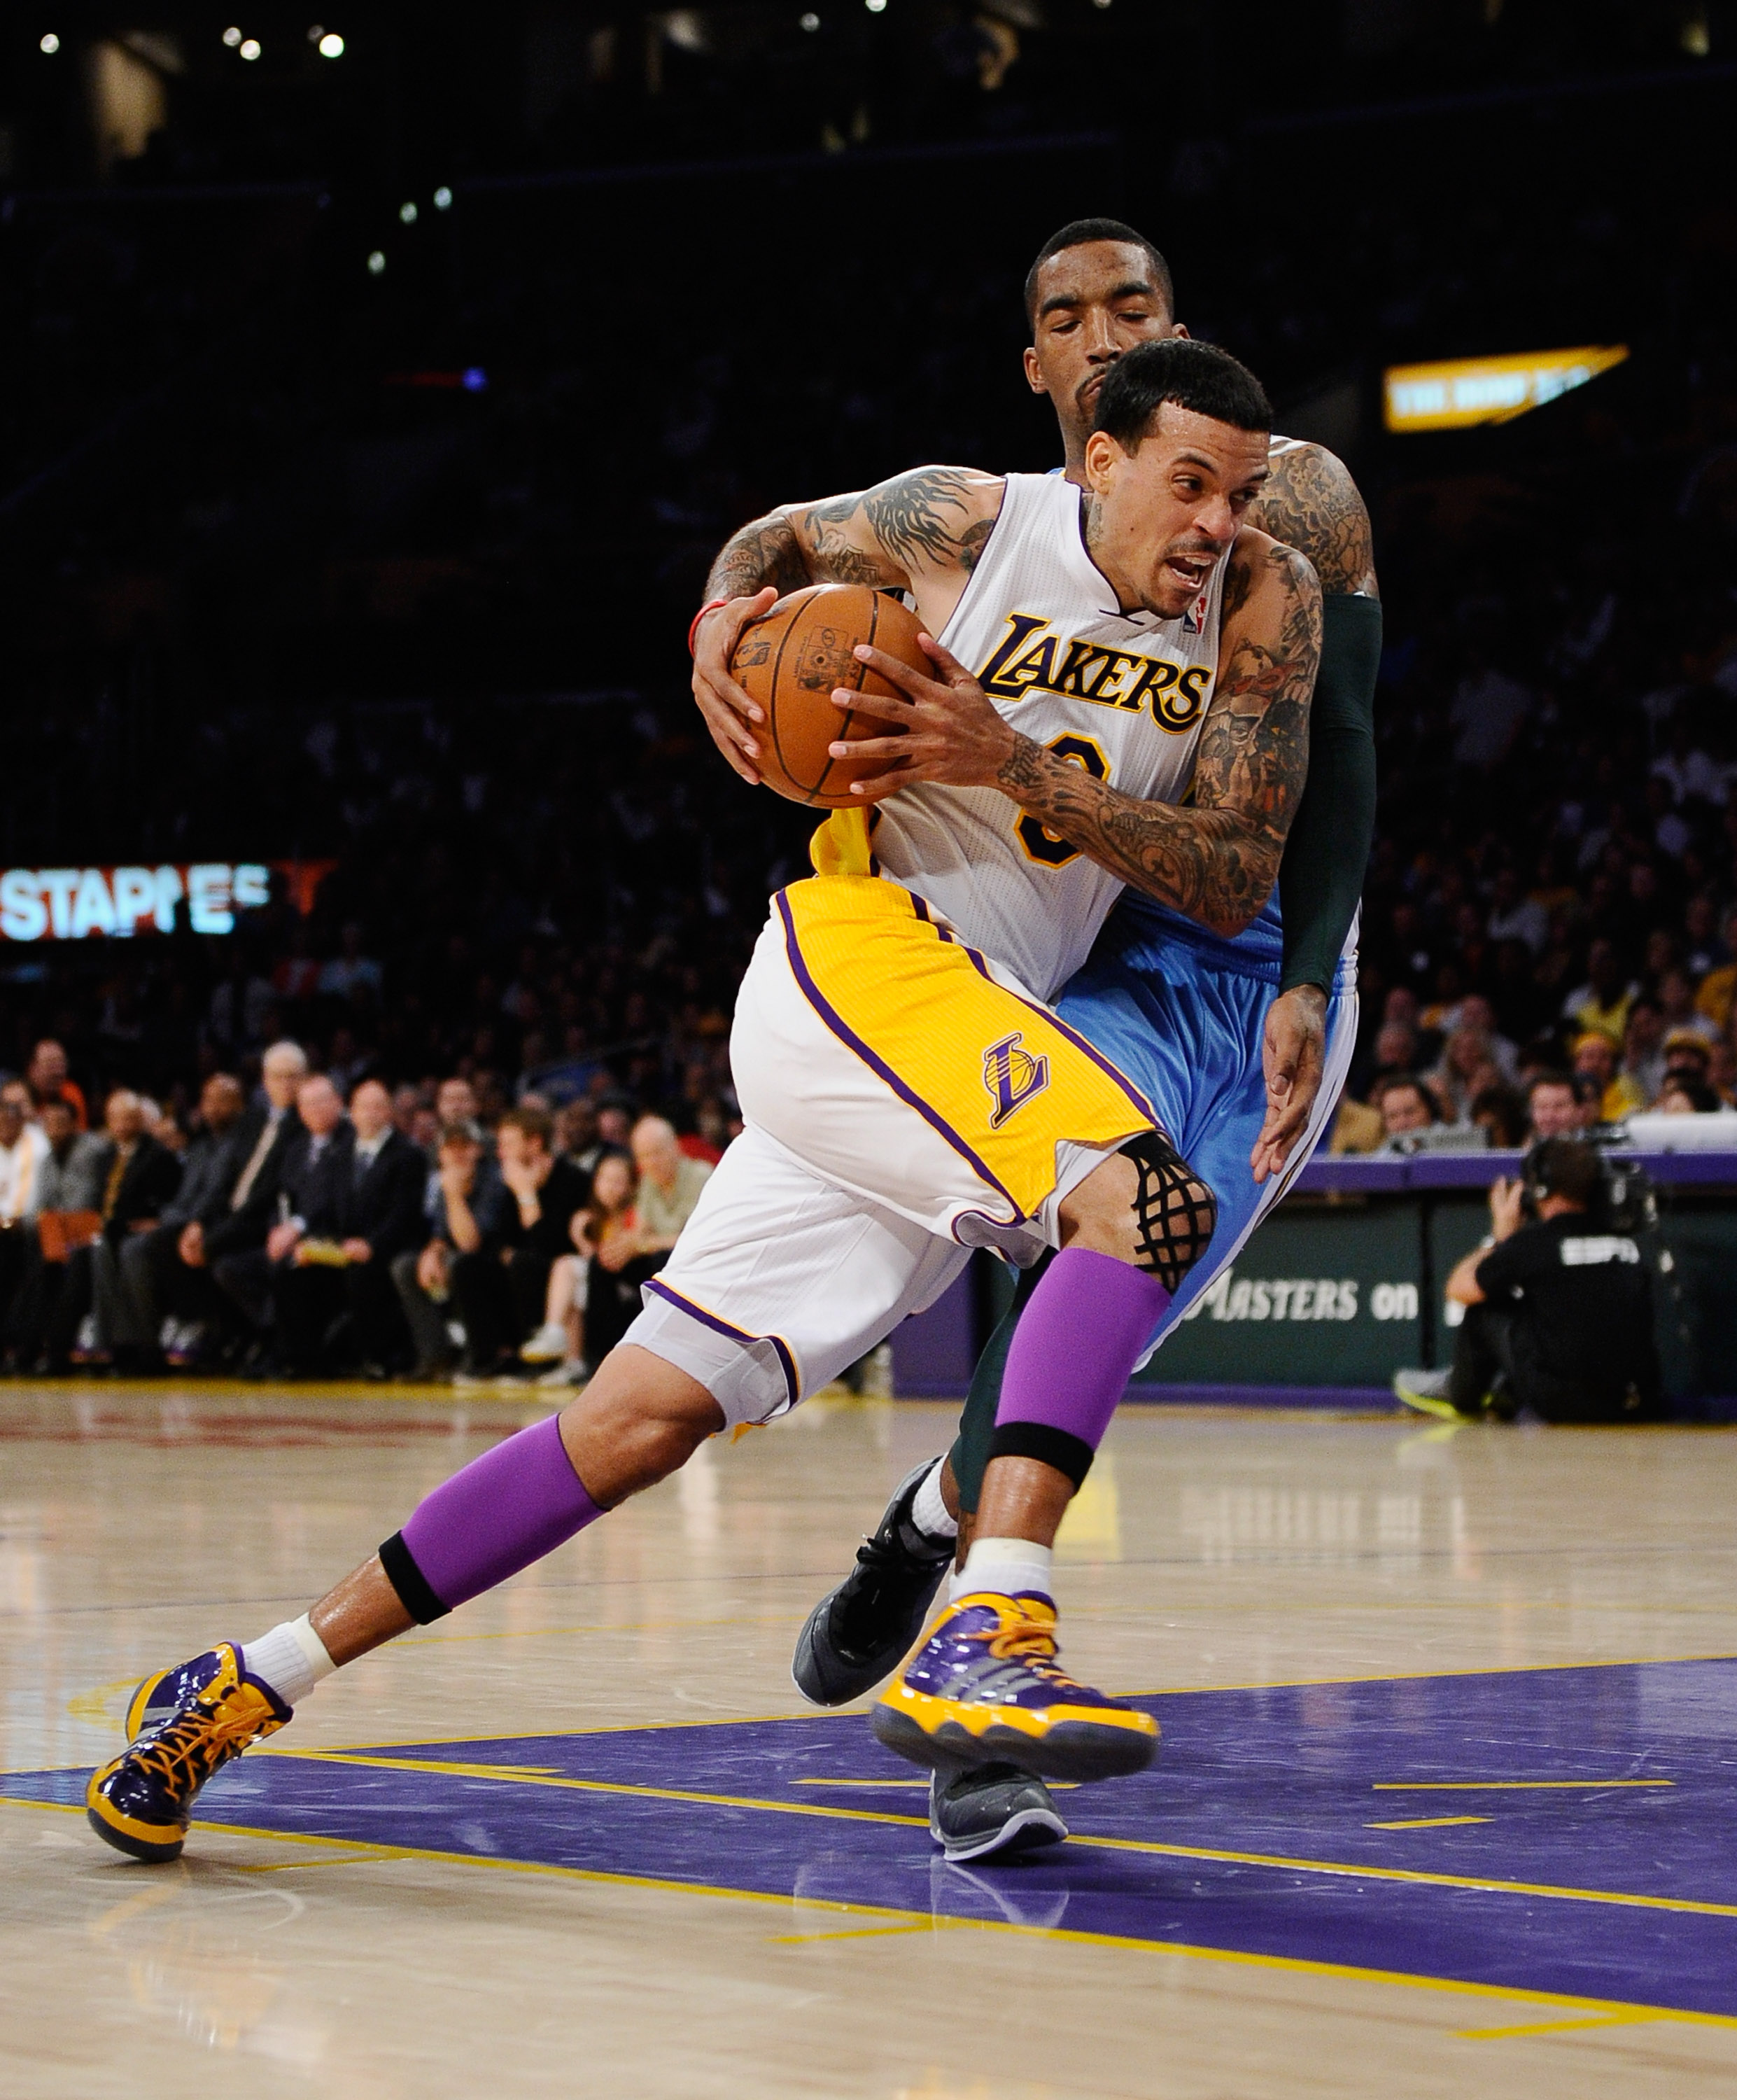 LOS ANGELES, CA - APRIL 03:  Matt Barnes #9 of the Los Angeles Lakers drives against JR Smith #5 of the Denver Nuggets at Staples Center on April 3, 2011 in Los Angeles, California. NOTE TO USER: User expressly acknowledges and agrees that, by downloading